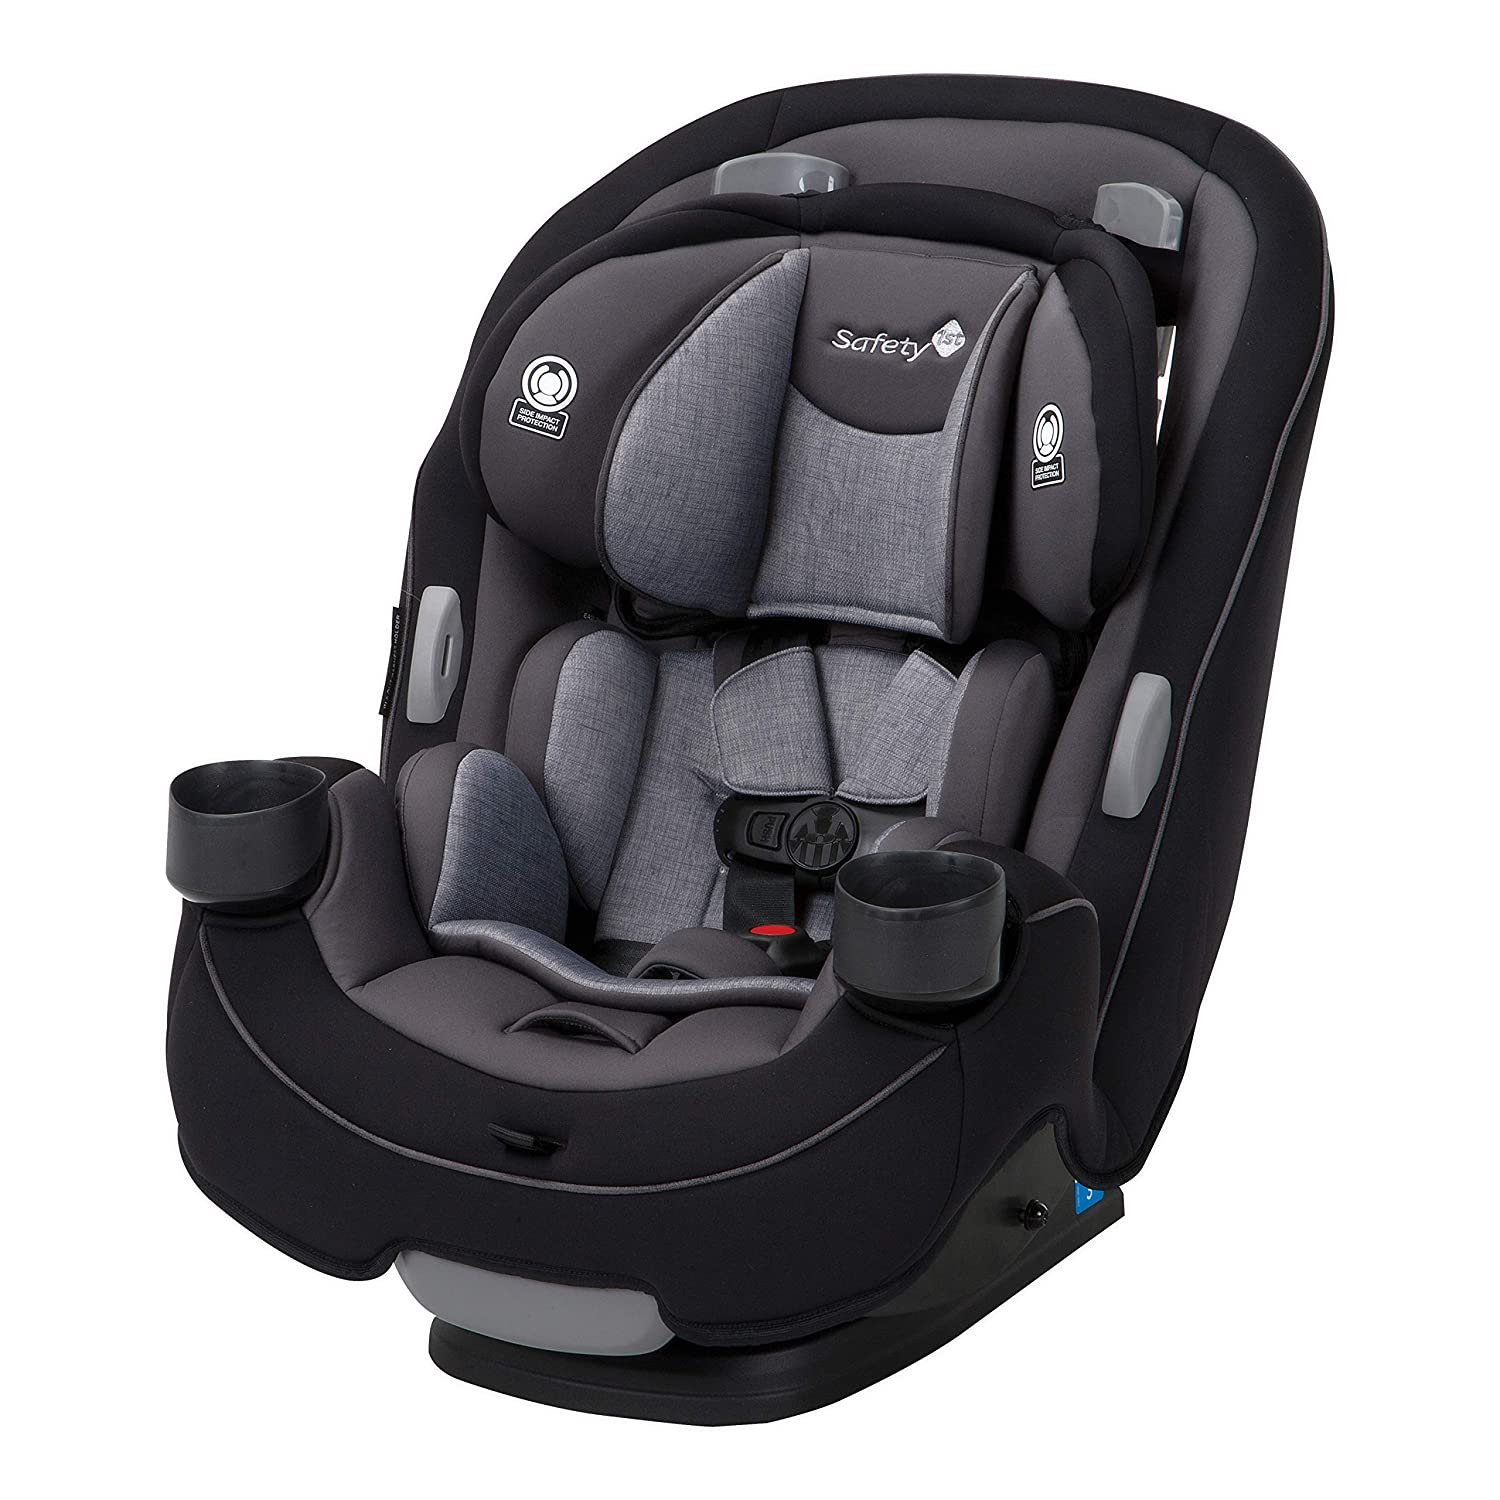 Safety 1st Grow and Go 3-in-1 Convertible Car Seat, Blue Coral Safety 1st (SAFBH) CC138DWL